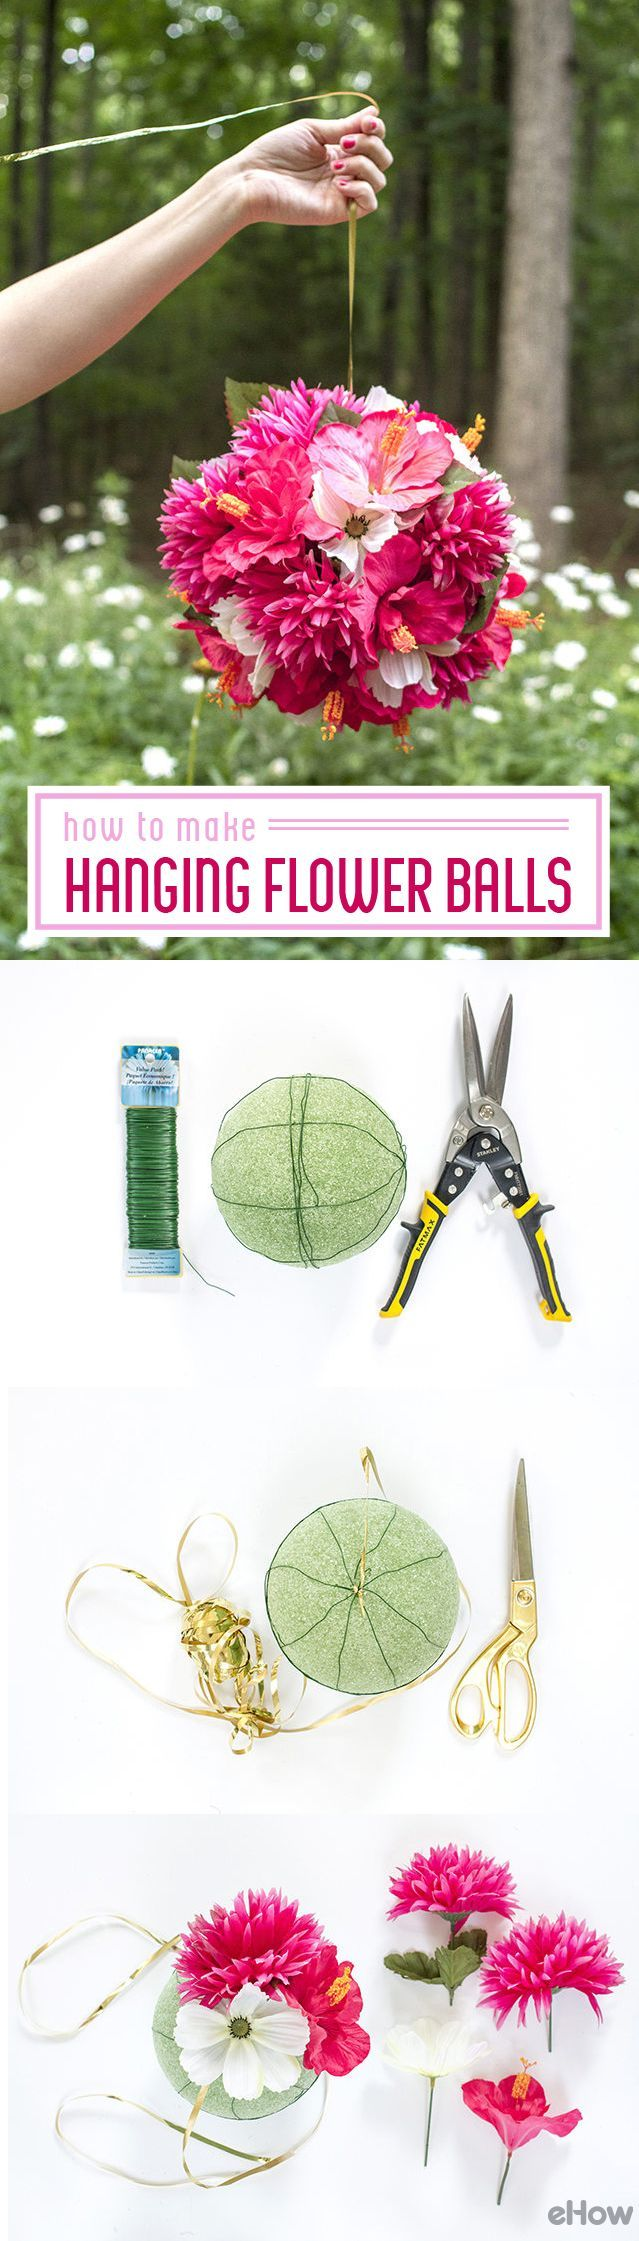 Flower of the balls: we create beauty with our own hands